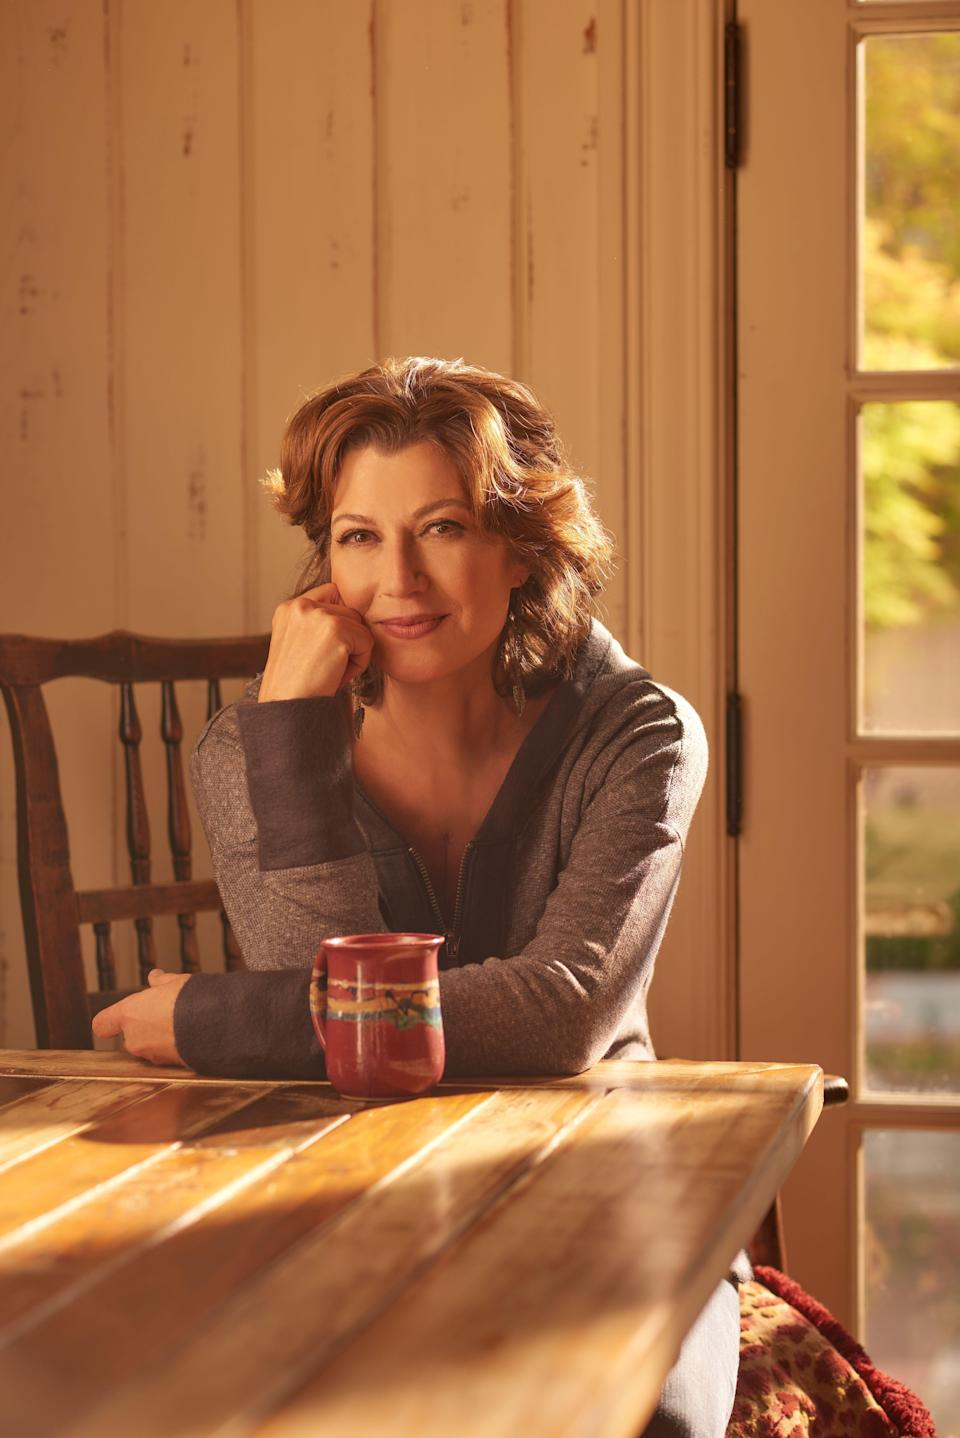 """Amy Grant's """"Heart in Motion"""" album spawned the hits """"Baby Baby,"""" """"Every Heartbeat,"""" """"Good For Me"""" and """"That's What Love is For."""""""